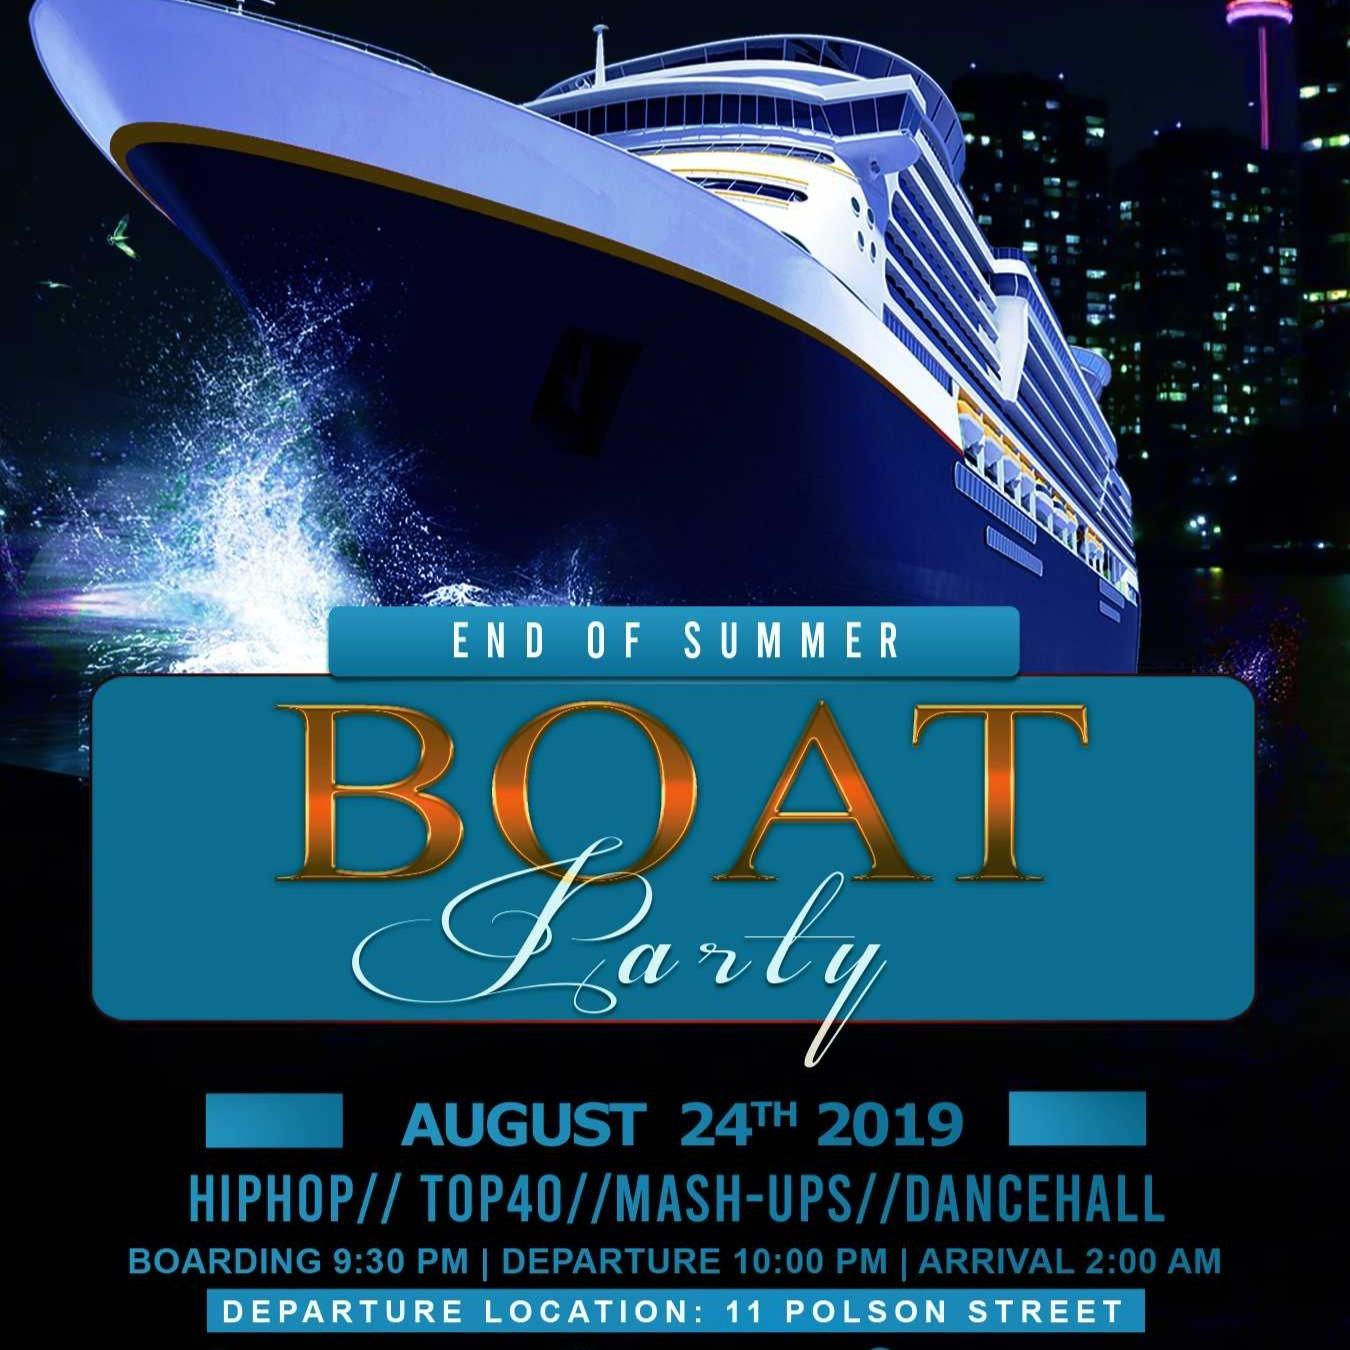 END OF SUMMER TORONTO BOAT PARTY